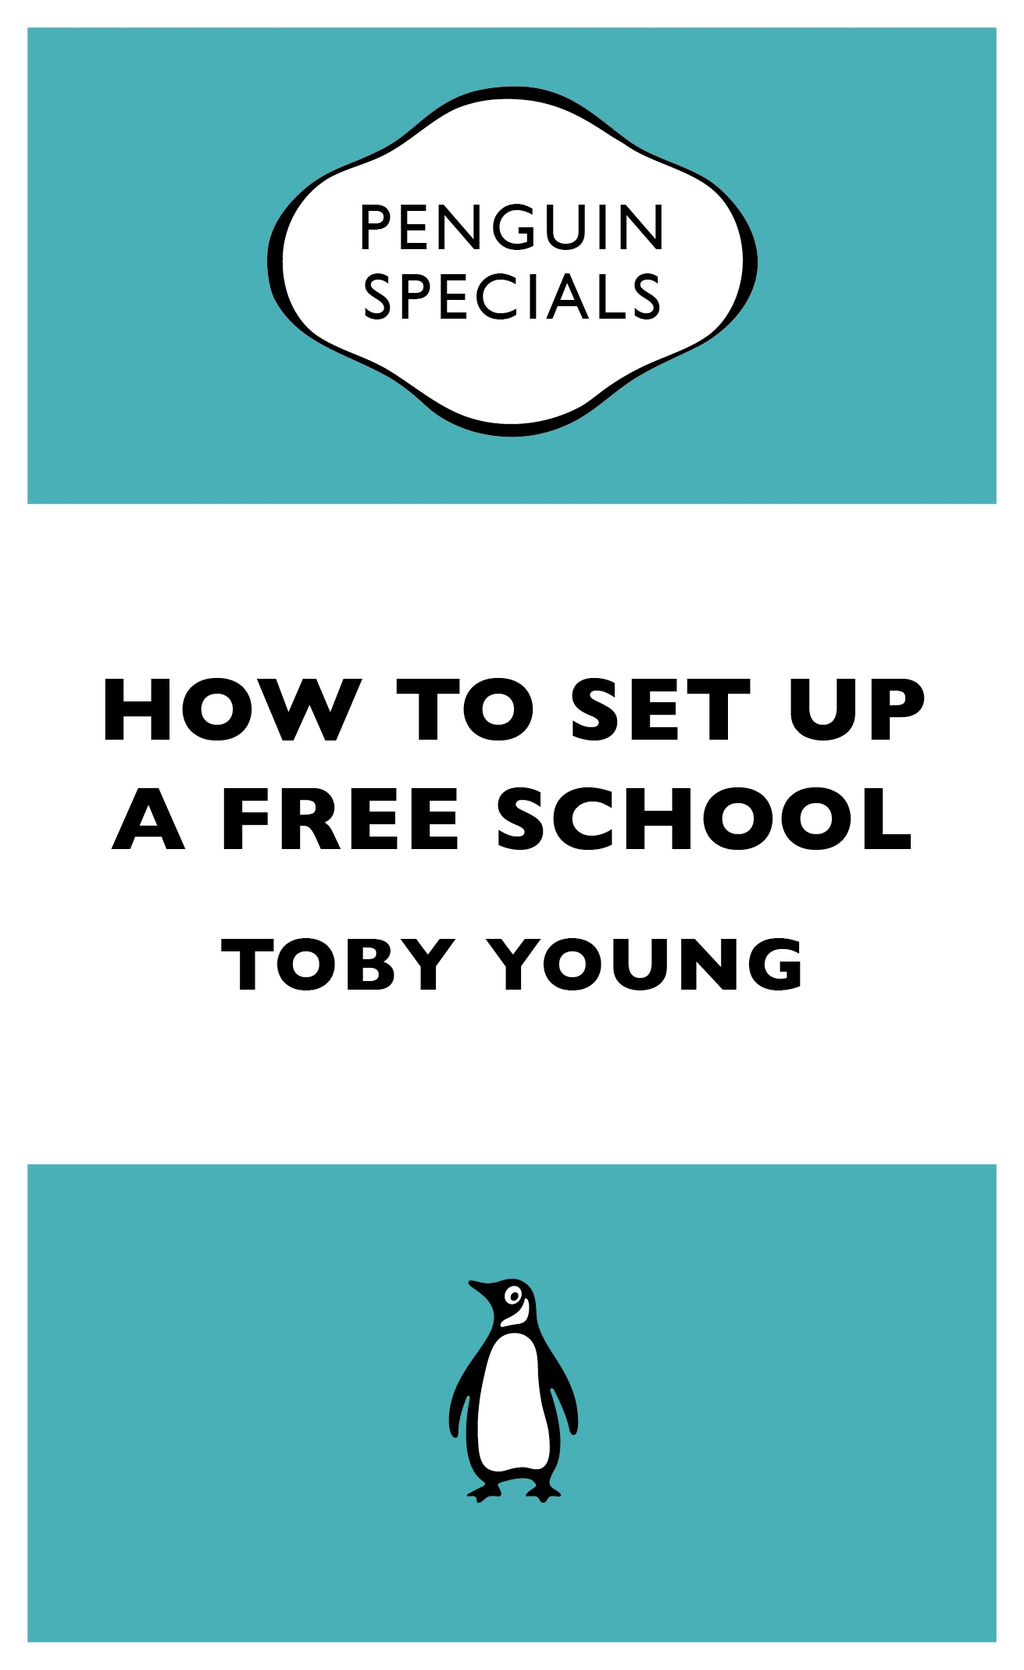 How To Set Up a Free School (Penguin Specials)